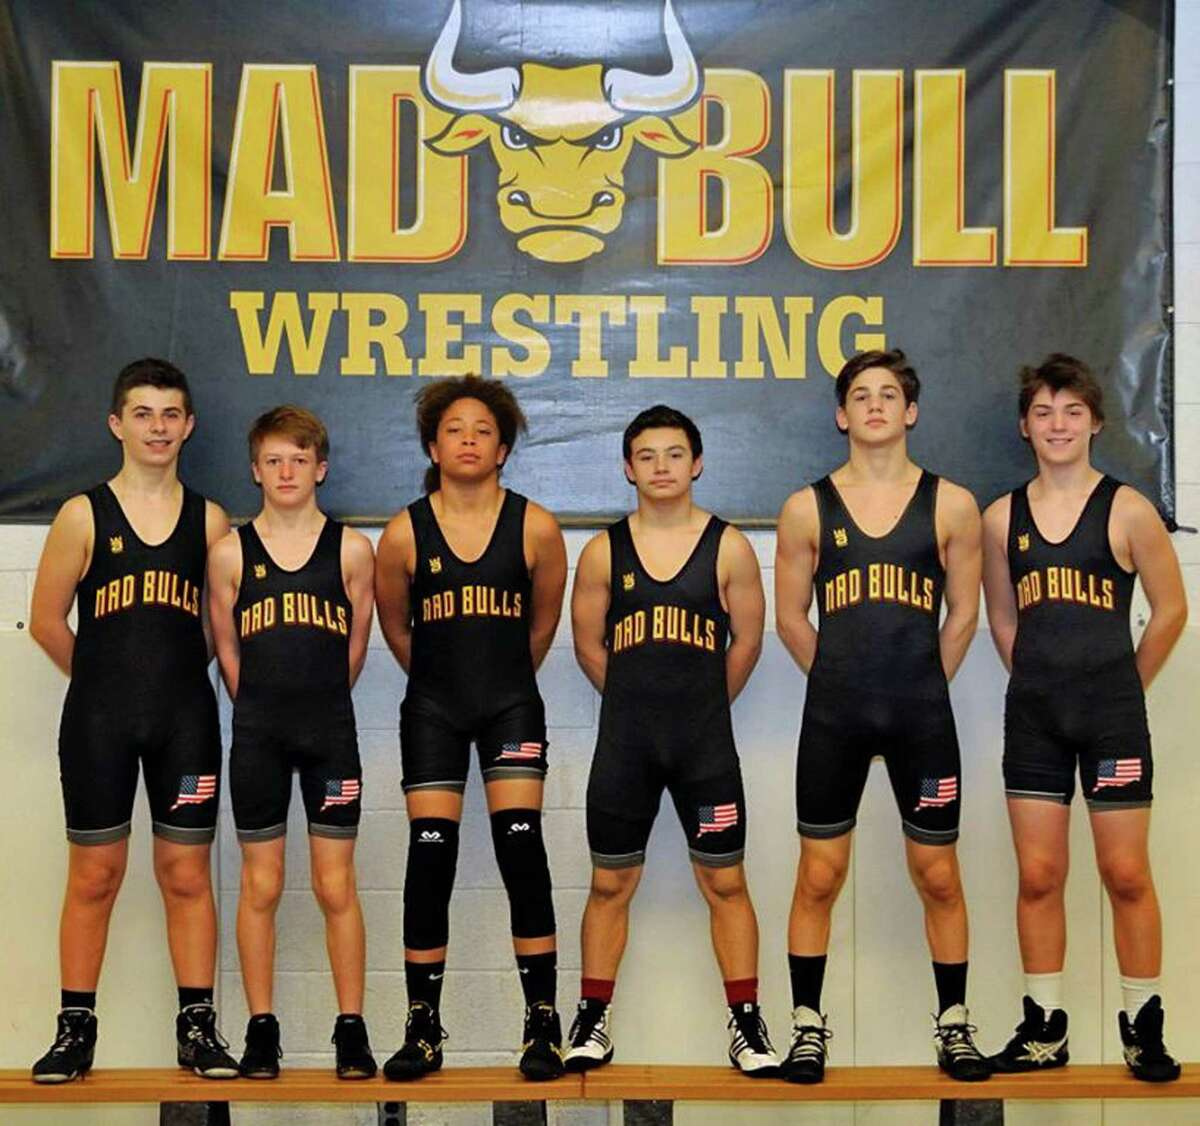 Middle school wrestlers from the Norwalk Mad Bulls are, from, Anthony Marini, Charlie Prather, Koy Price, Artie Cocchia, Dean Tsiranides and Nick Augeri.